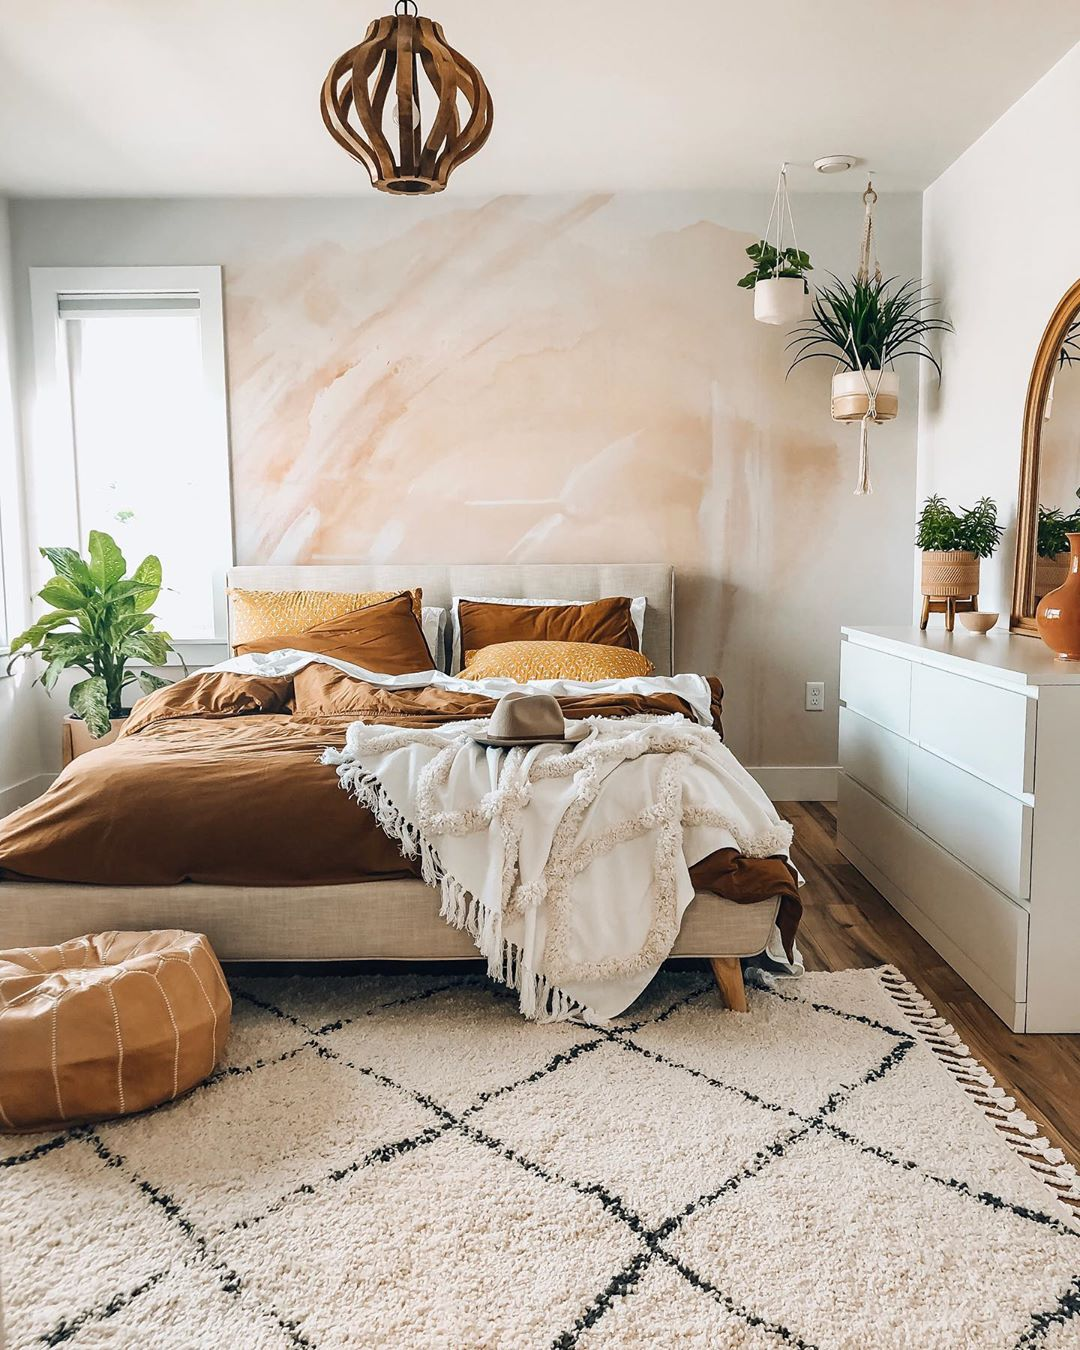 A Stunning Accent Wall Sets the Tone for This Ultra-Peaceful Bedroom